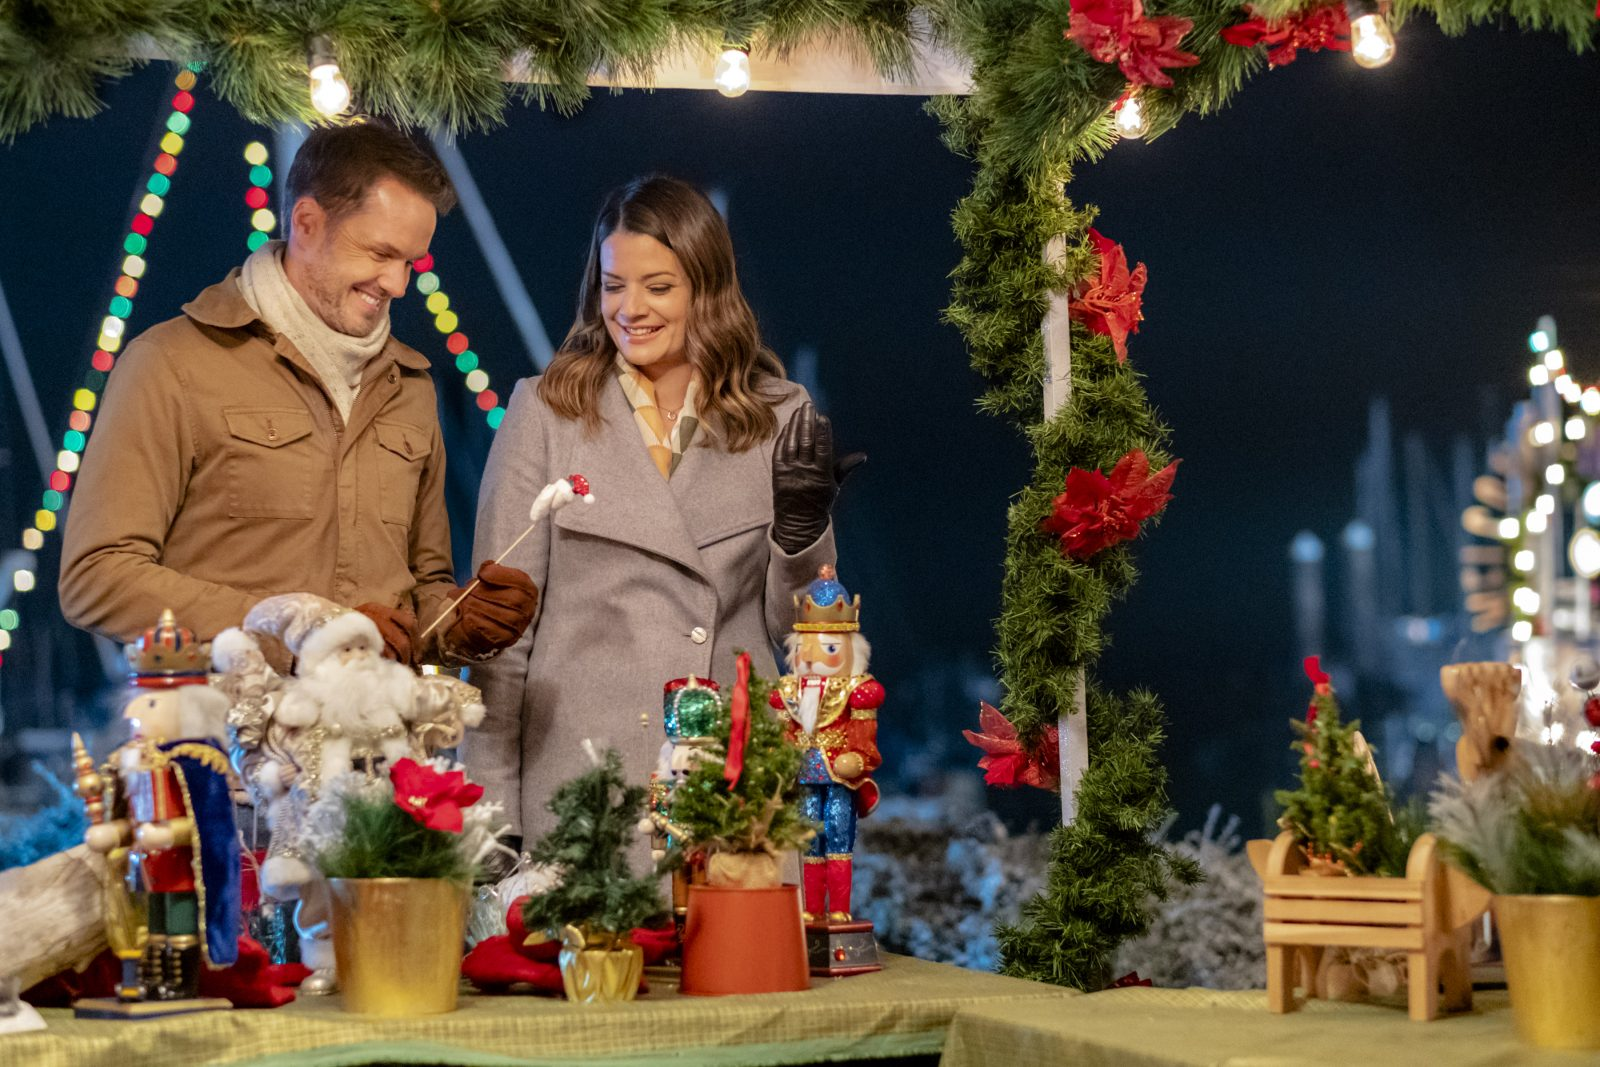 Kimberley Sustad Starts To Fall For Paul Campbell In A Godwink Christmas On Hallmark Movies Mysteries Crown Media Bettina Strauss